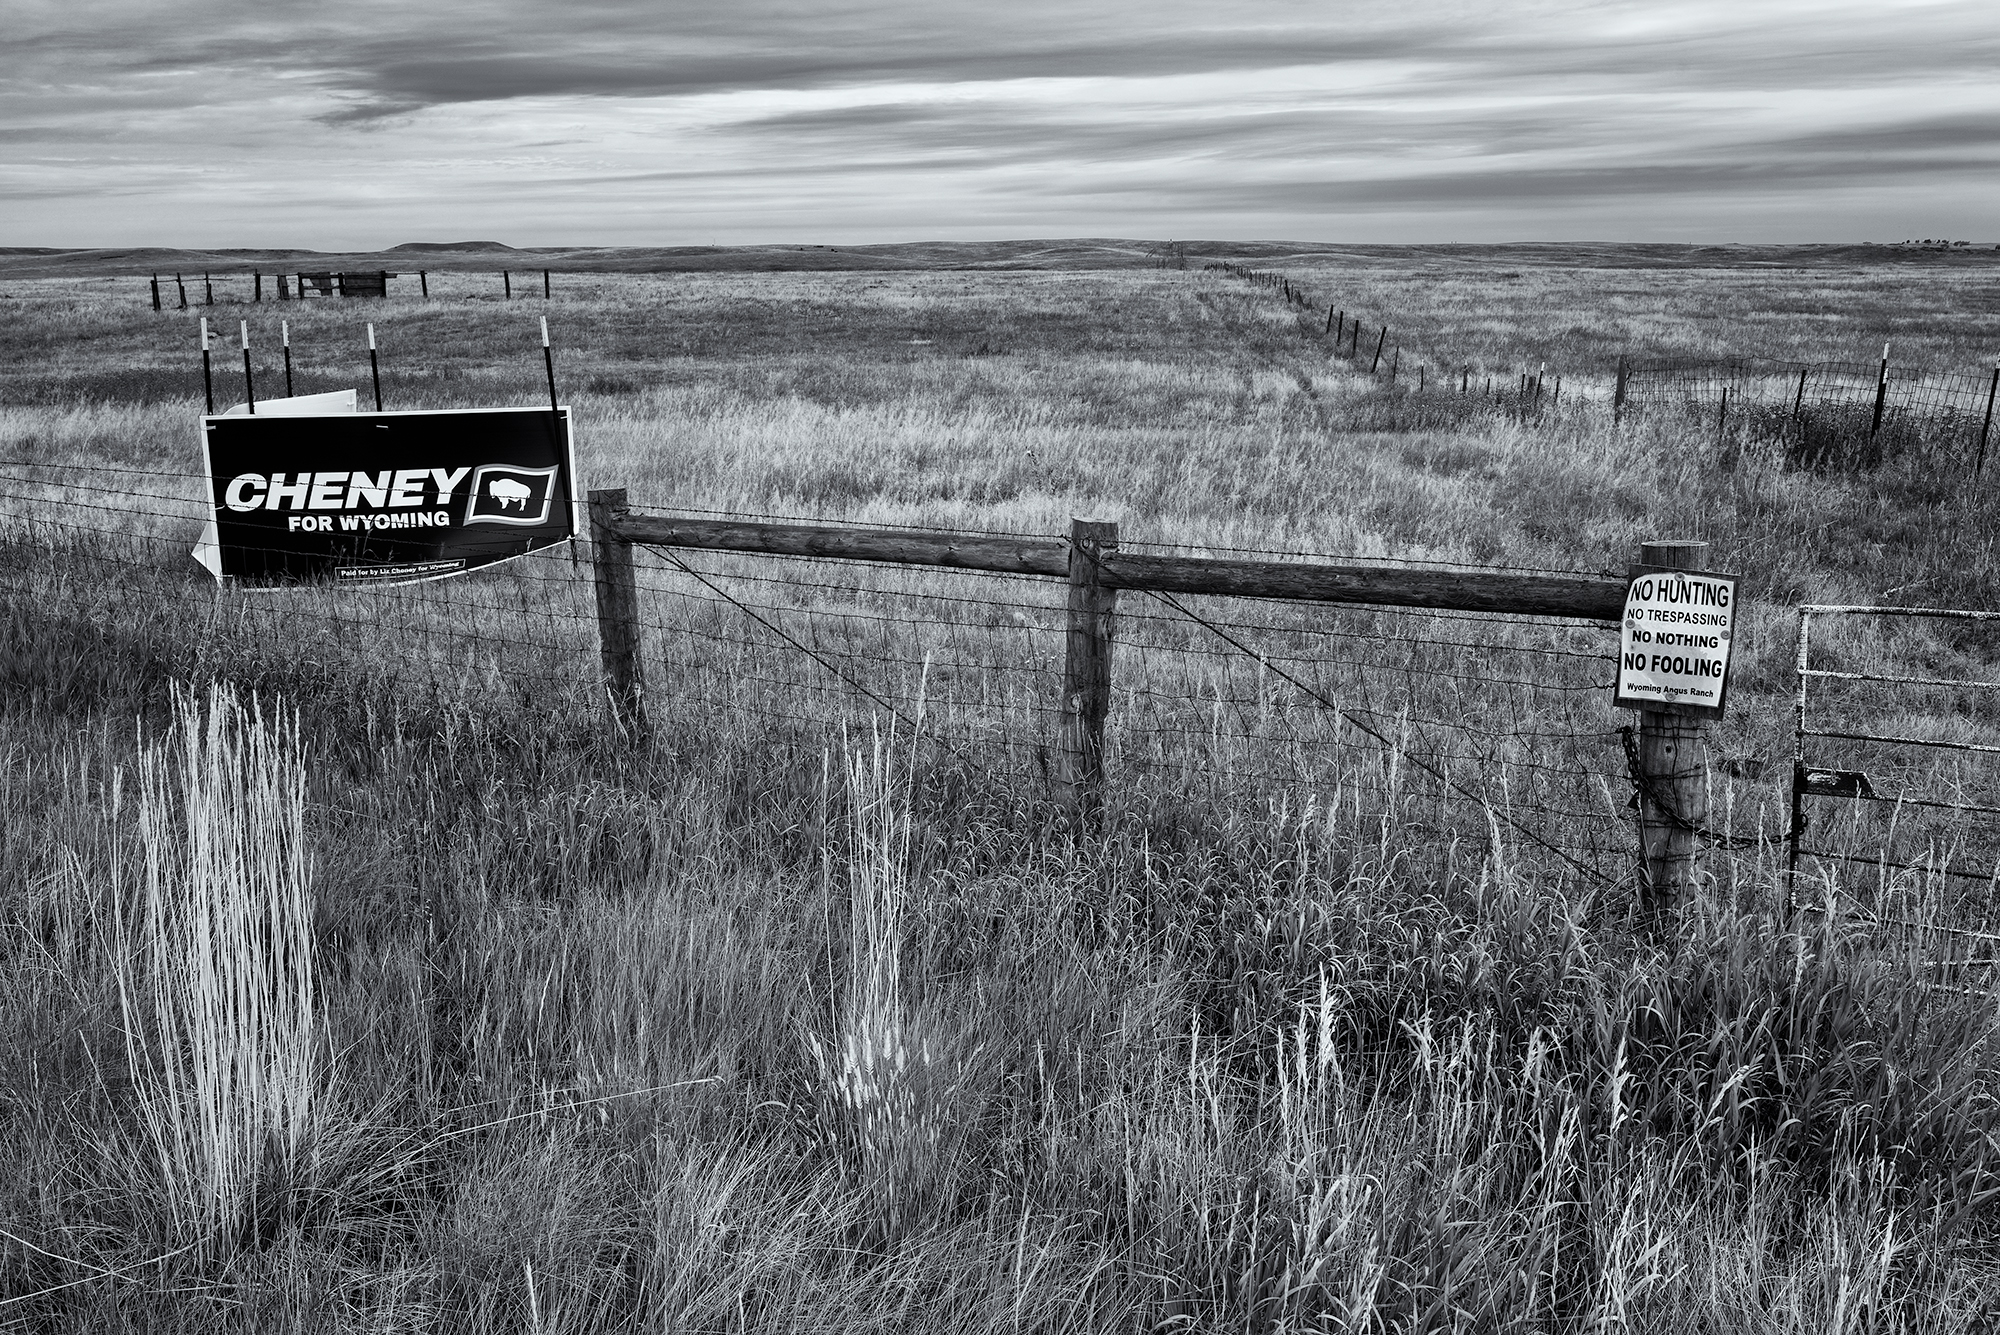 Cheney's Wyoming. Happy Jack Road, near Cheyenne, Wyoming, 2016